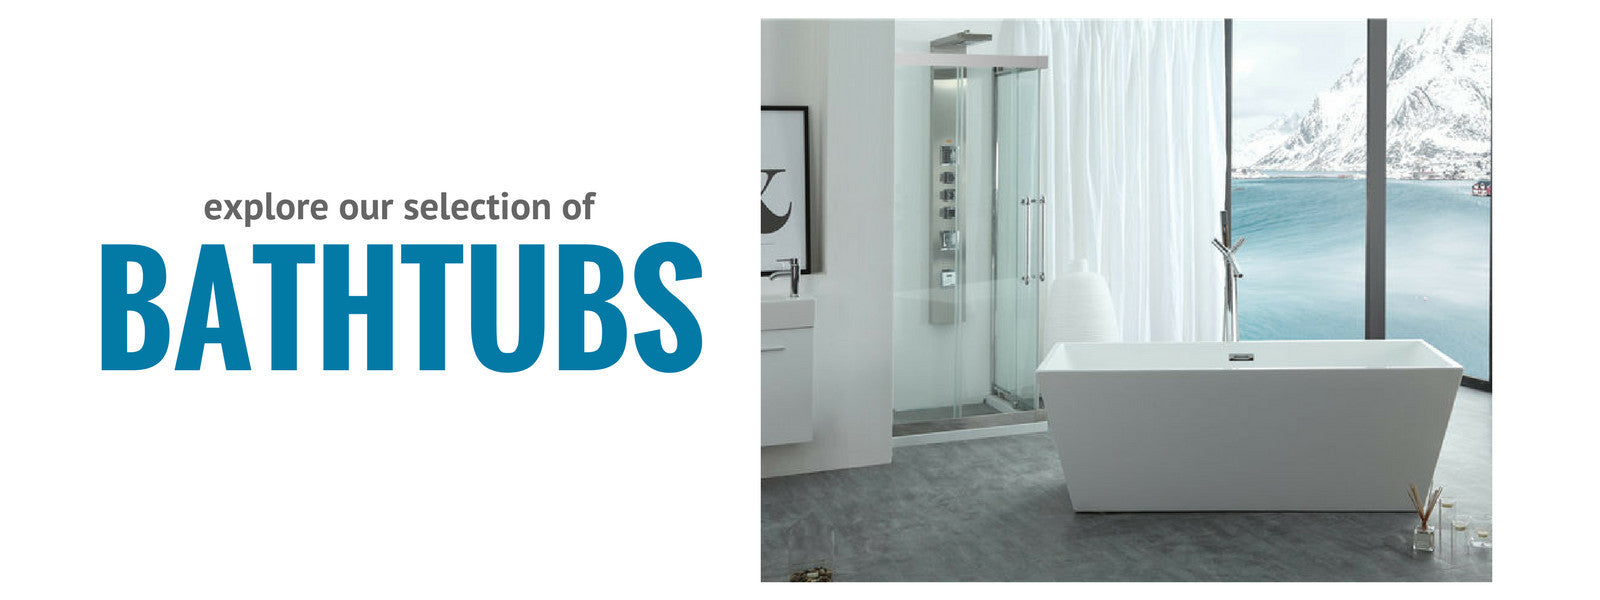 Luxurious Soaking Tubs Best Prices on Bathtubs